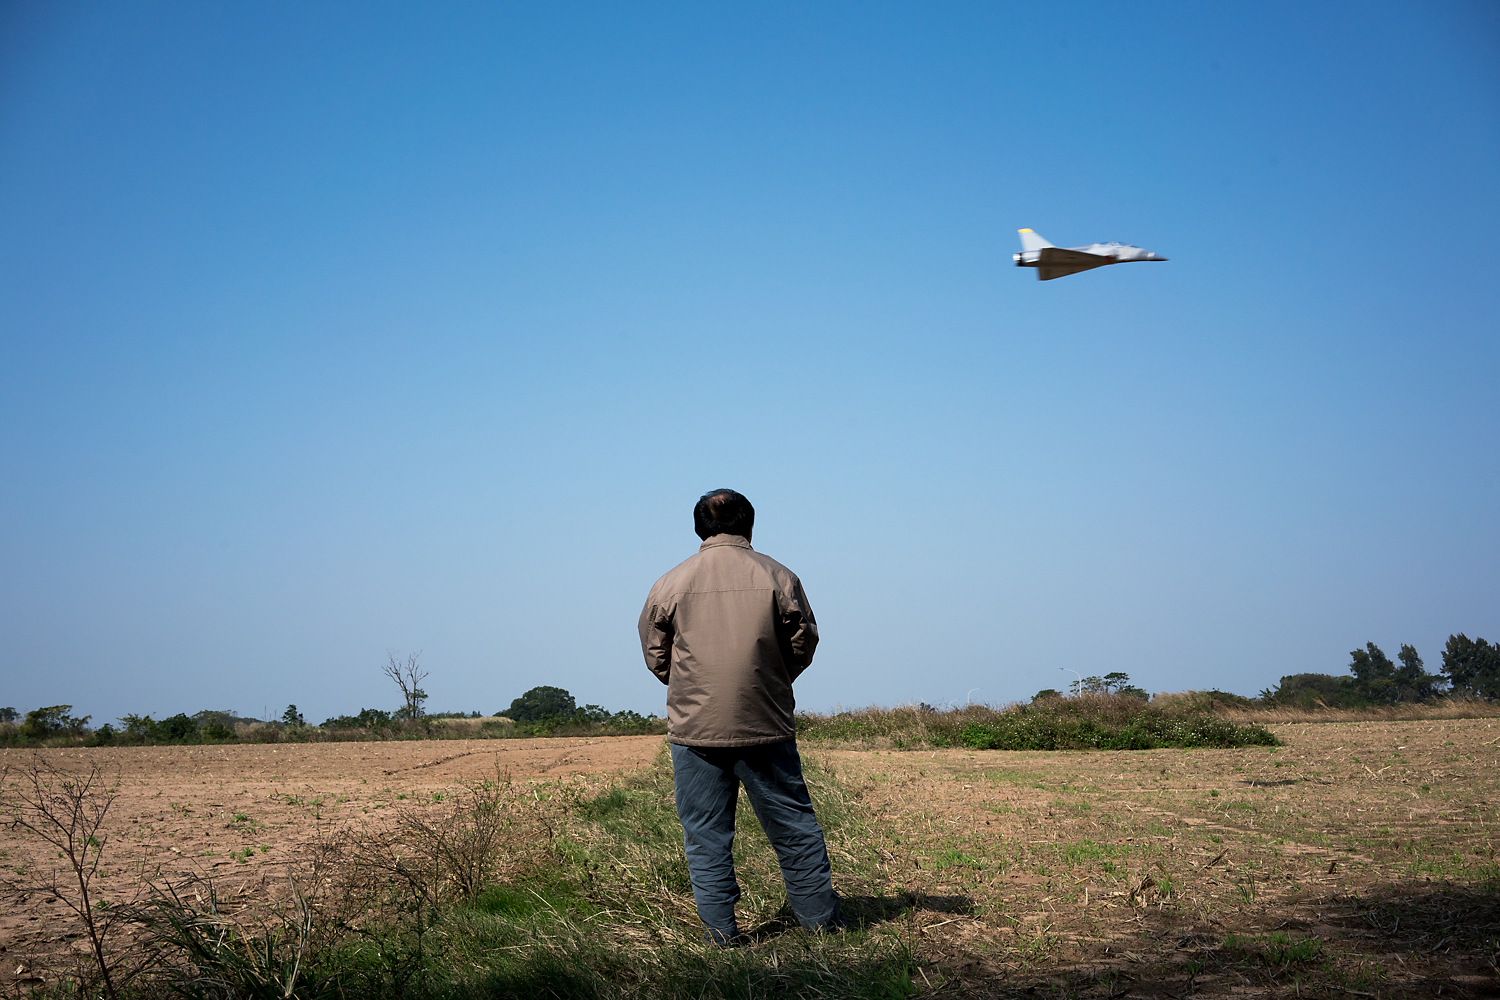 A miniature, battery-operated Dassault Mirage 2000 fighter jet—a scale model of the ones the Taiwan Air Force uses—zooms past an open field in Kinmen. Piloting it is Chen Minghan, an air conditioner repair man originally from mainland Taiwan. He said, 'People ask me if it's good to reunite with mainland China. I say it's now not good but in the future it might be good. There is a better quality of life and more freedom here, even if we are more backward compared to China. Their smog is blowing over there. China is so big and Taiwan is so small. If every person in China spat, it would flood all of Taiwan!'